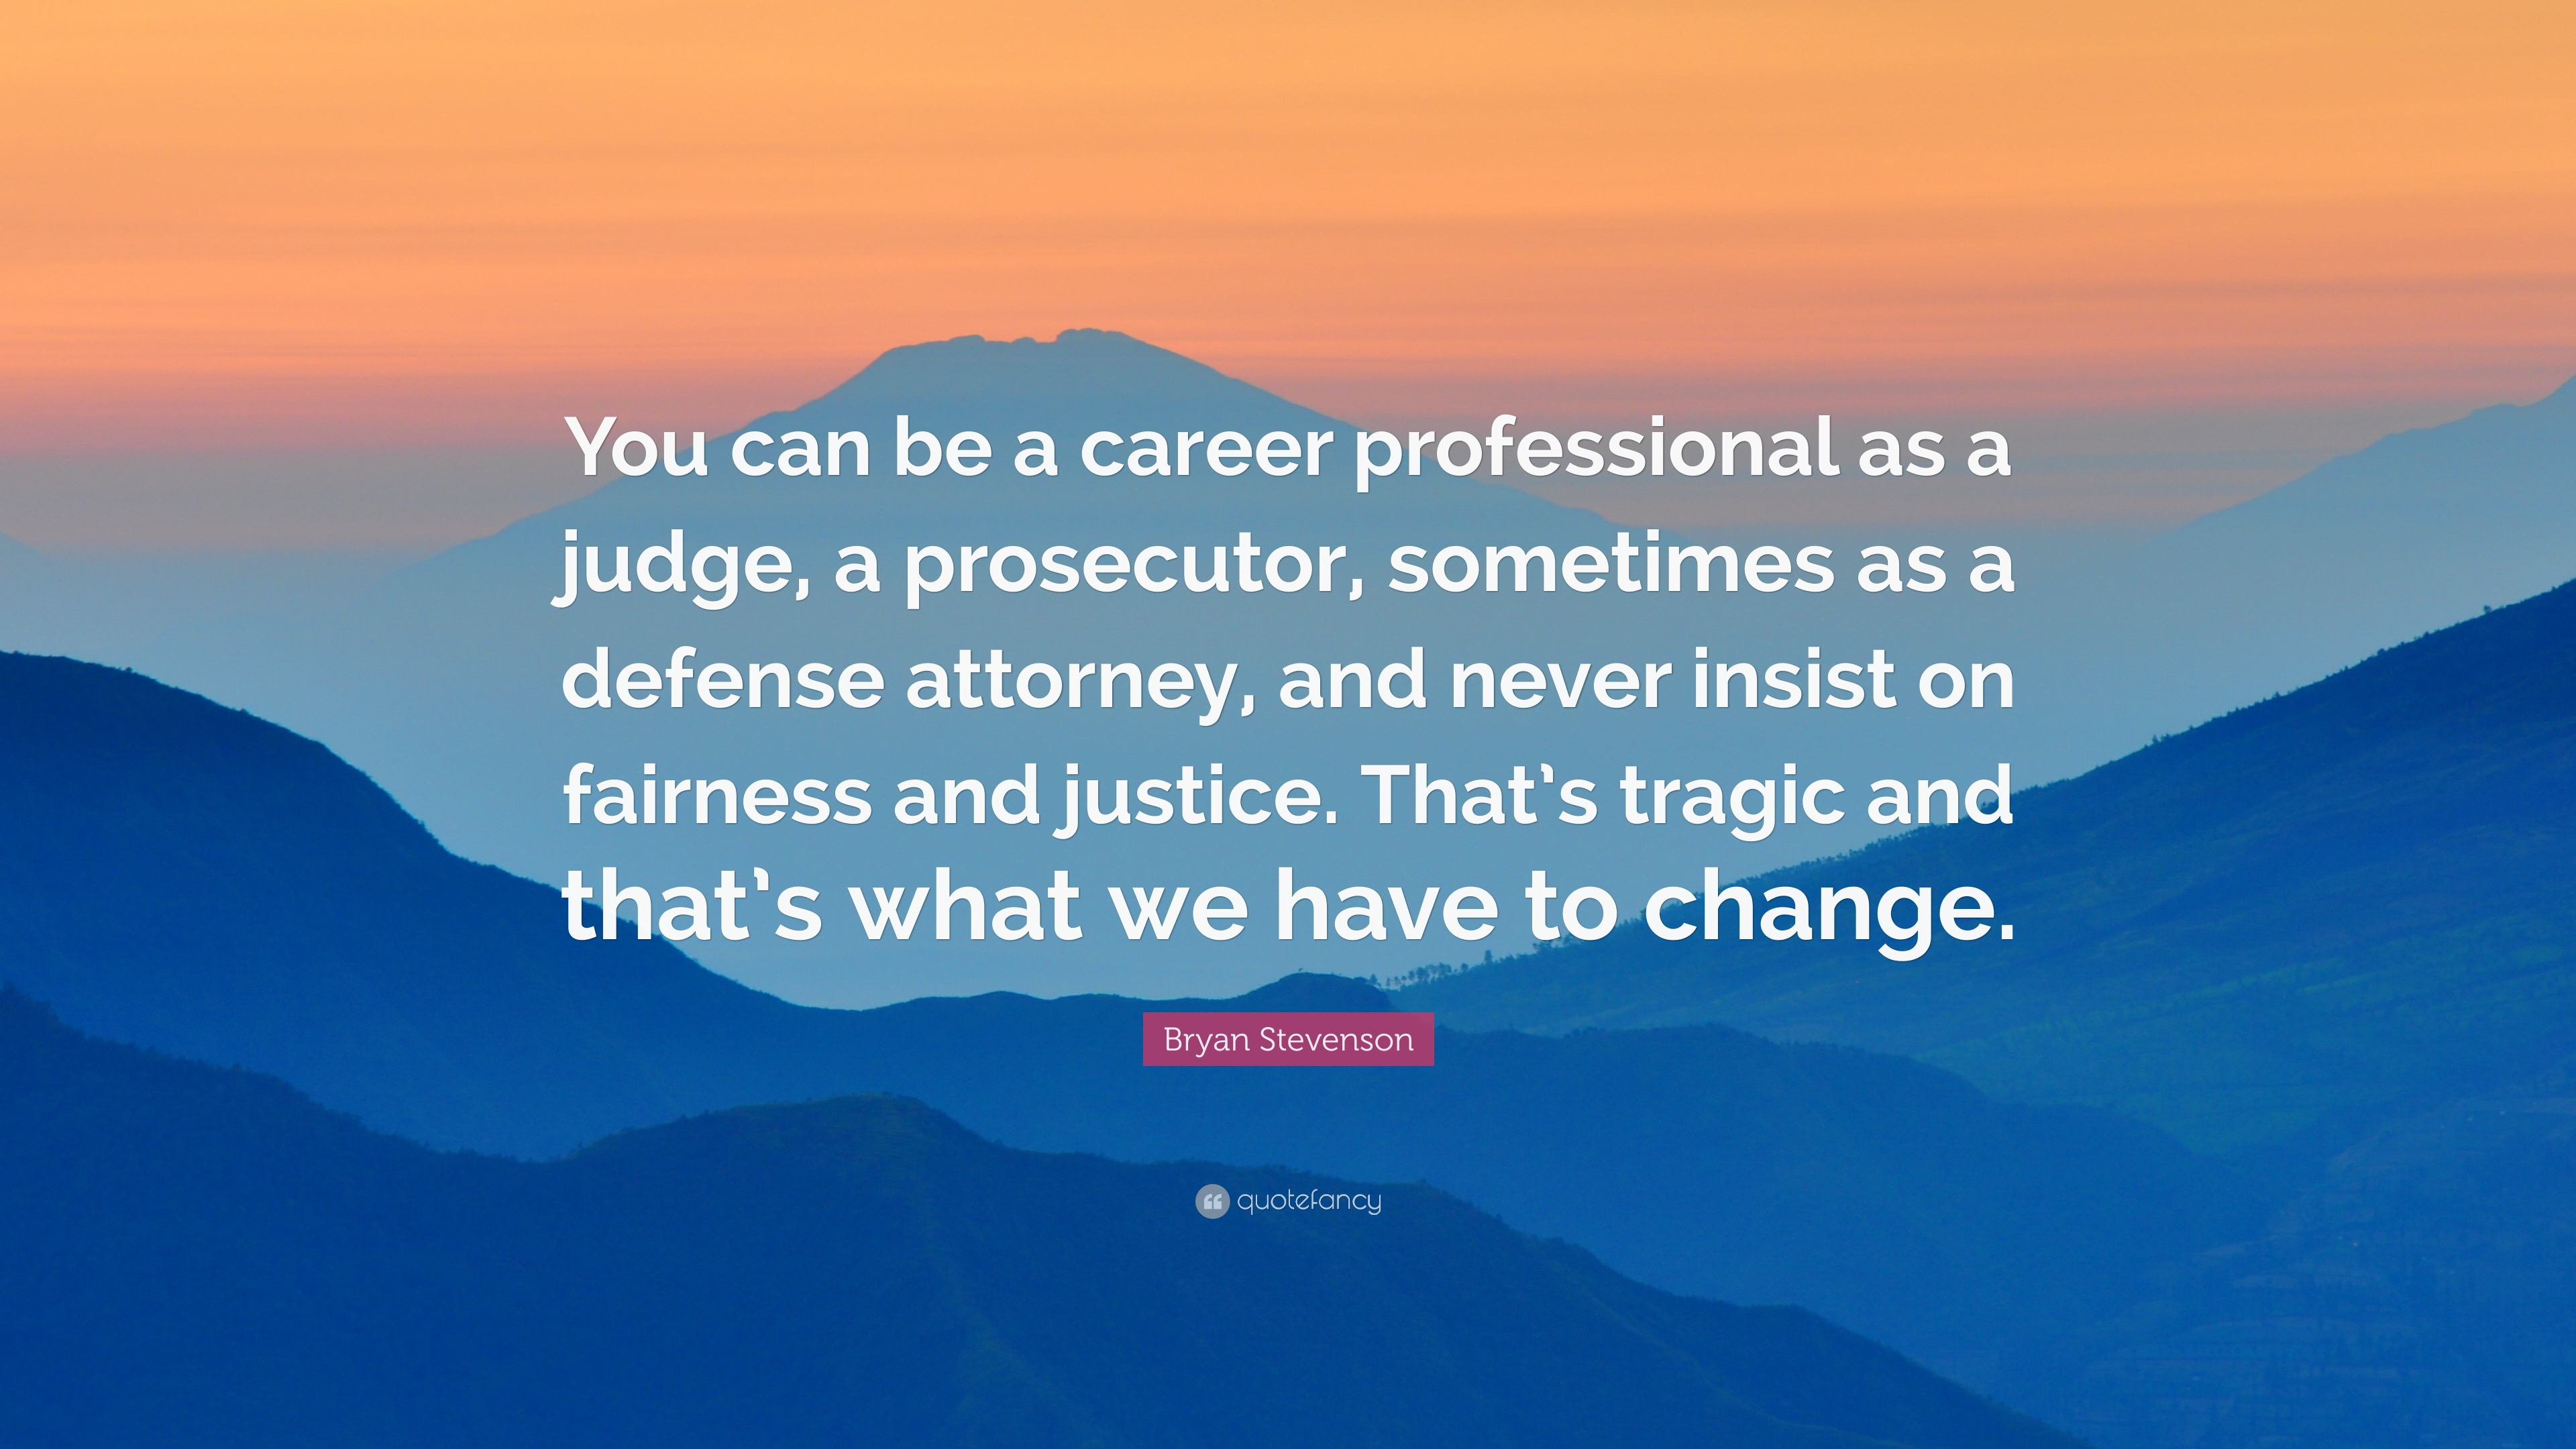 Bryan Stevenson Quote You Can Be A Career Professional As A Judge A Prosecutor Sometimes As A Defense Attorney And Never Insist On Fairness 7 Wallpapers Quotefancy